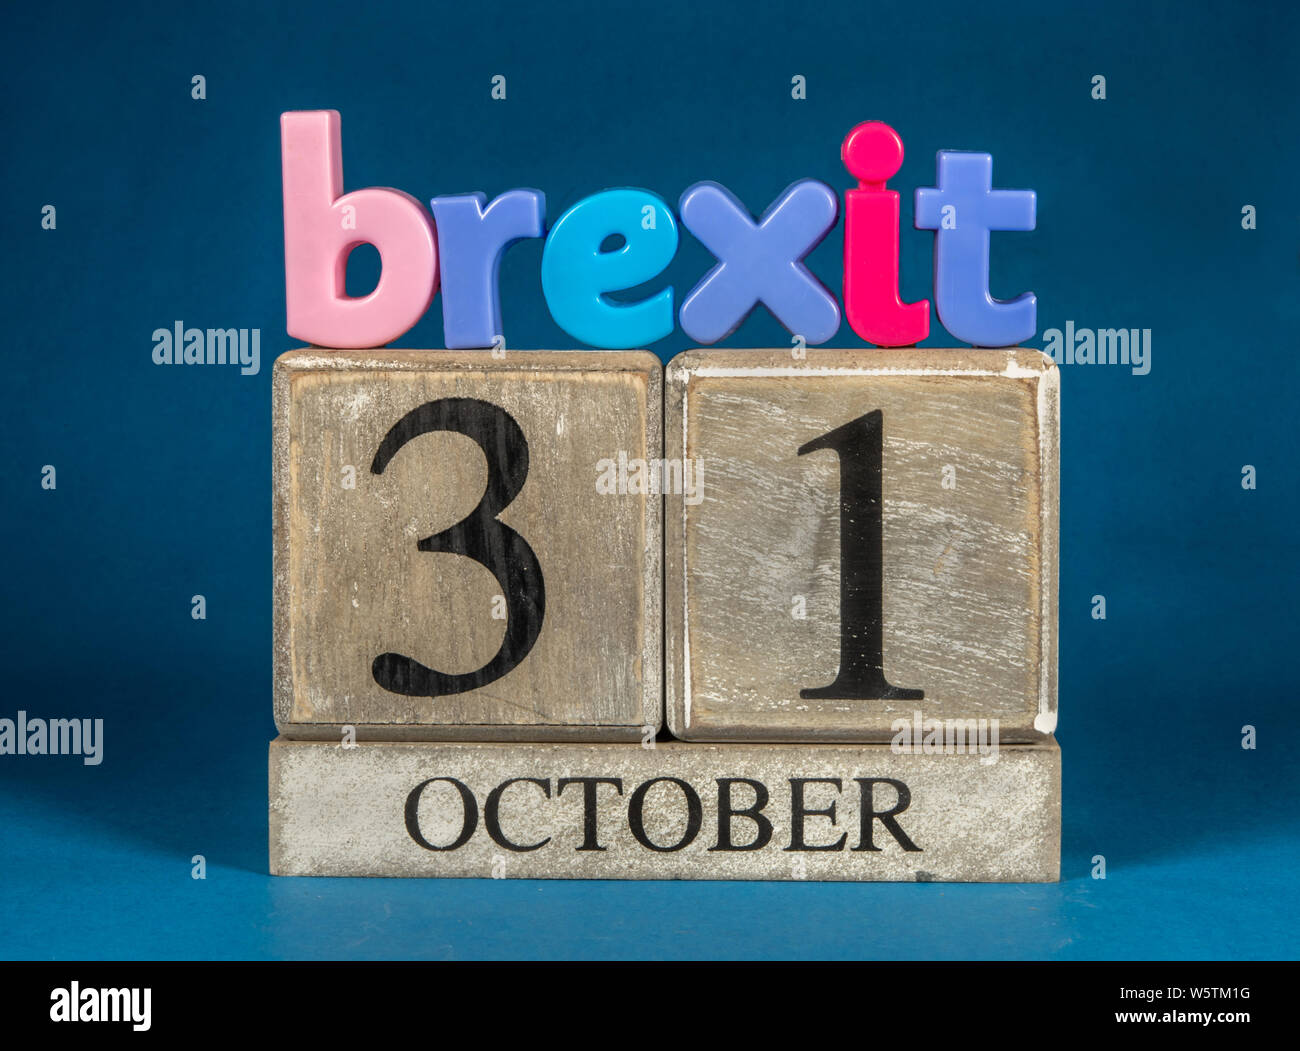 Brexit and Boris Decision 31st October Stock Photo